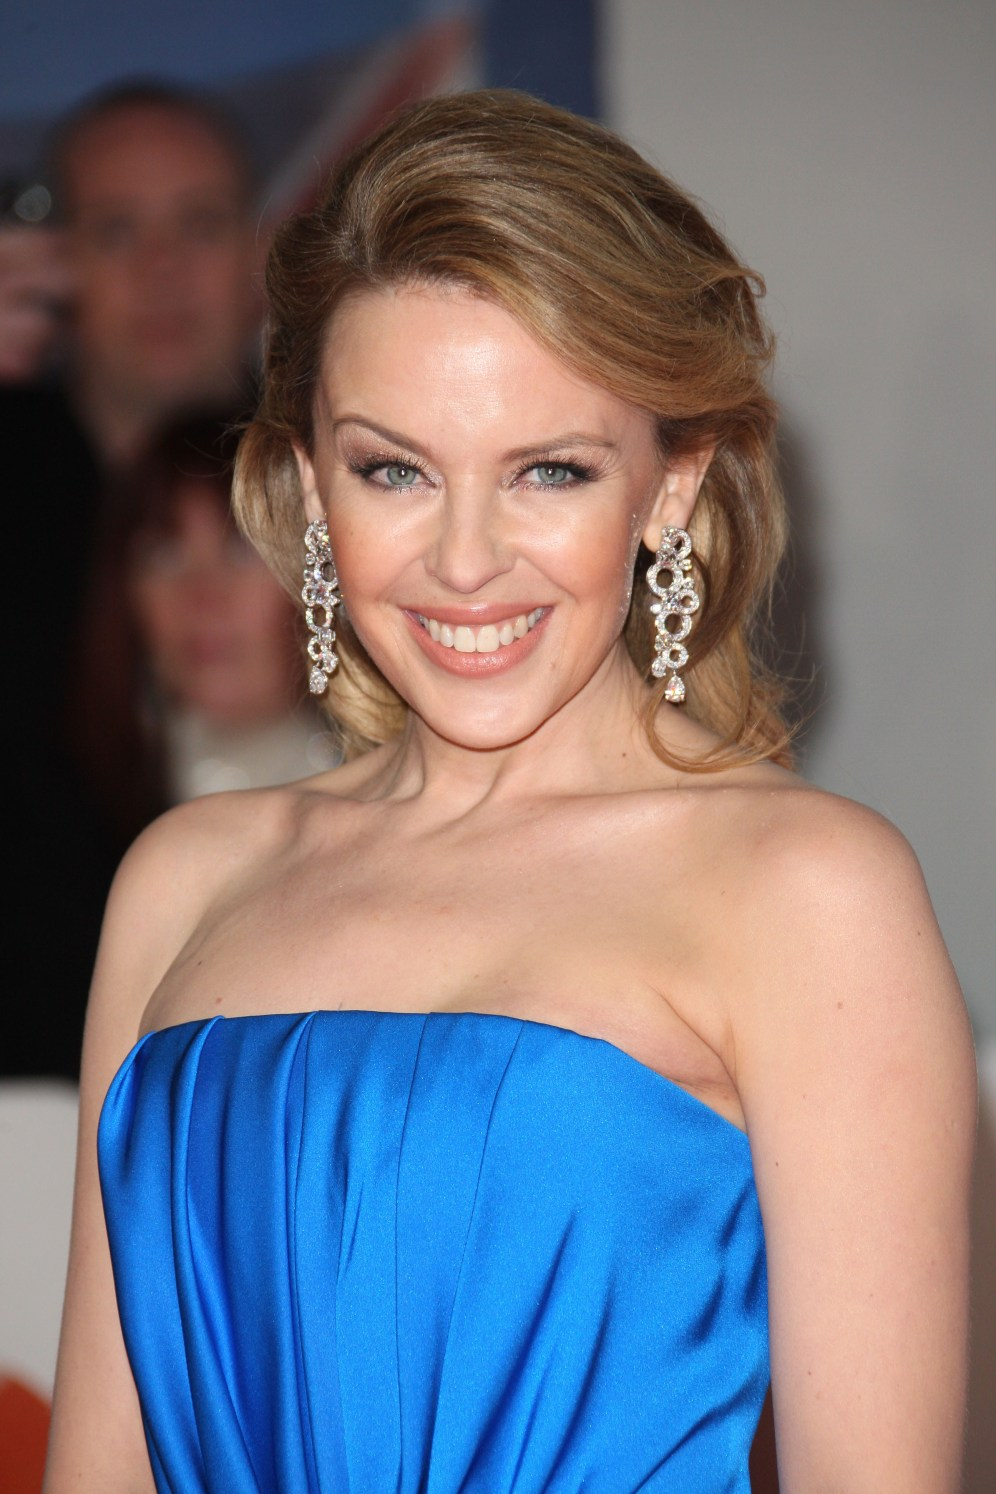 Kylie Minogue The Brit Awards 2012 held at The O2 - Arrivals London, England - 21.02.12 Mandatory Credit: Lia Toby/WENN.com